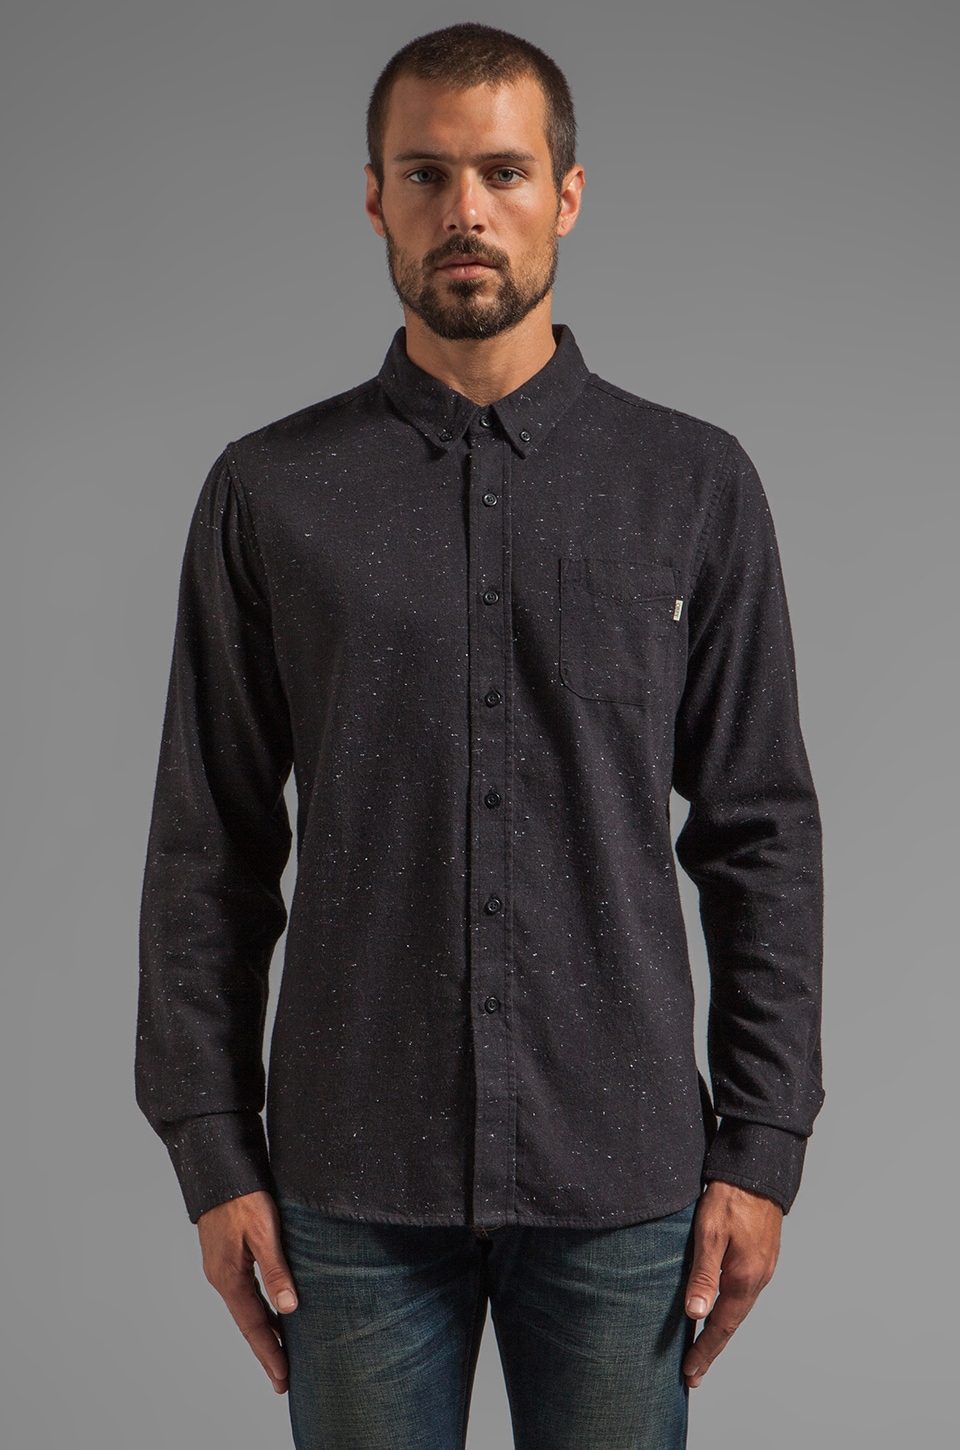 Obey Last Call Flannel Button Down with Speckles in Black